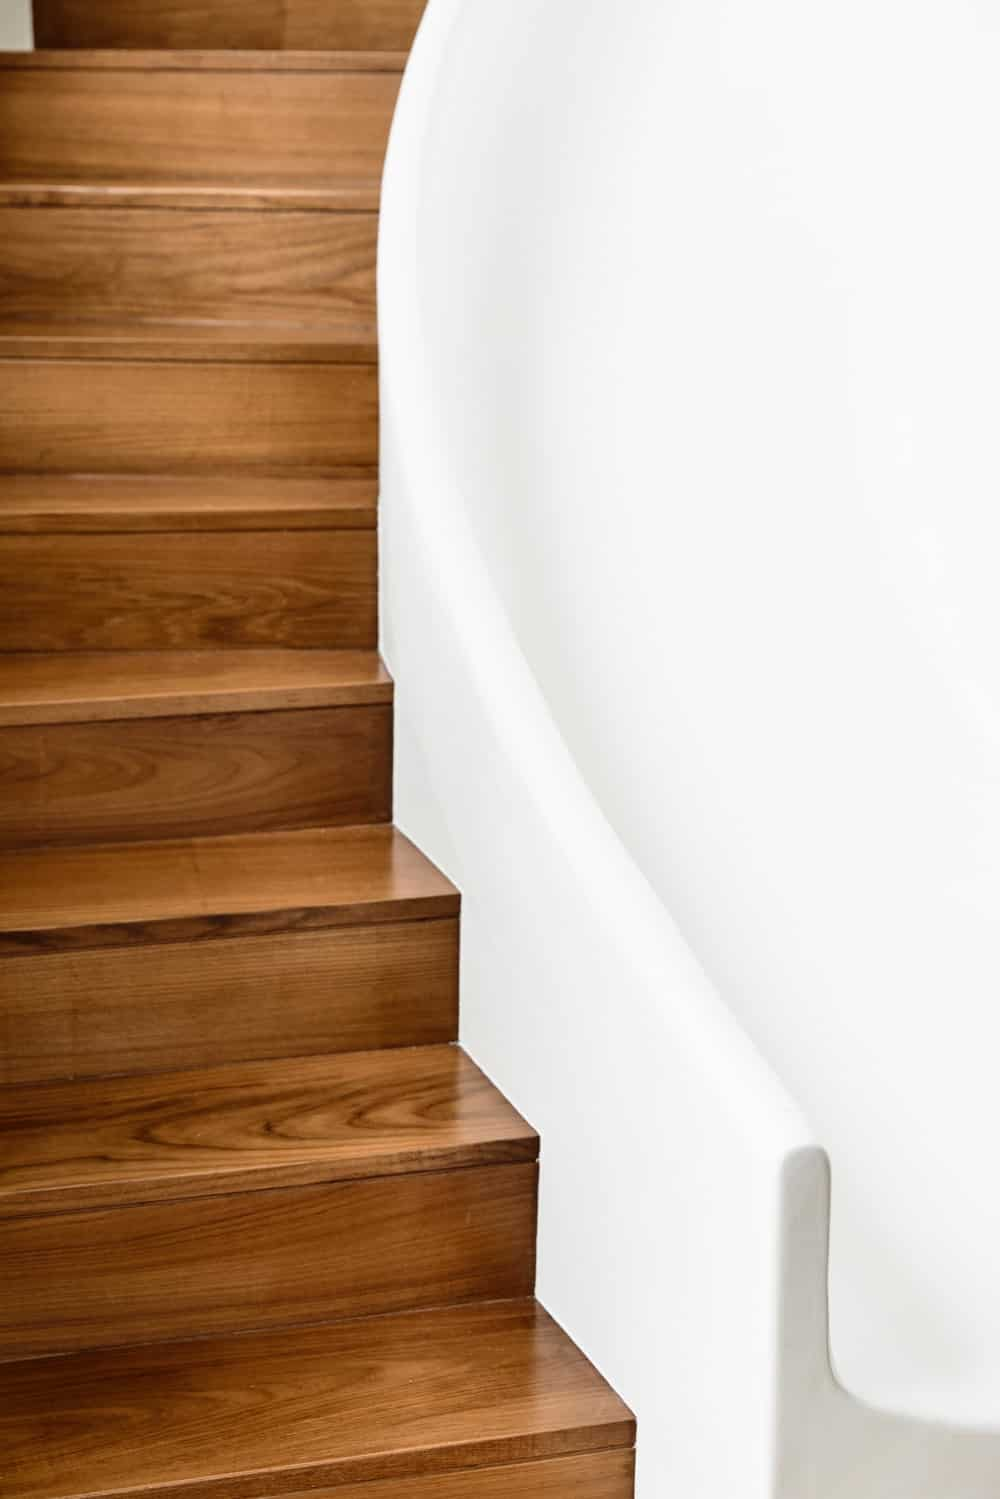 This close look showcases the contrast between the wooden steps with the white wall railing.